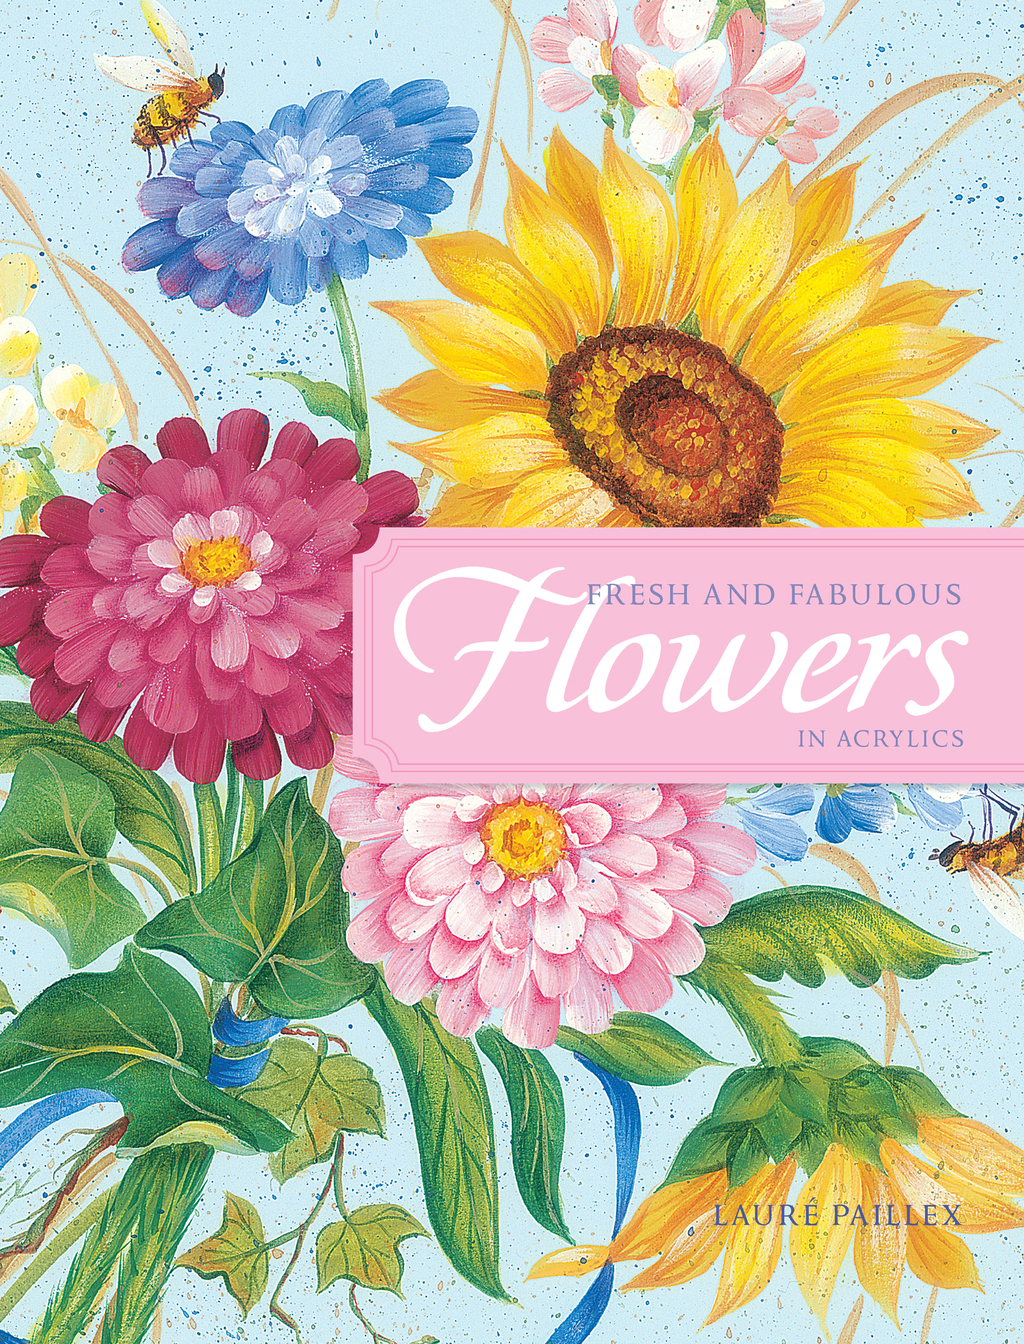 Fresh and Fabulous Flowers in Acrylic: 20 Garden Fresh Floral Designs